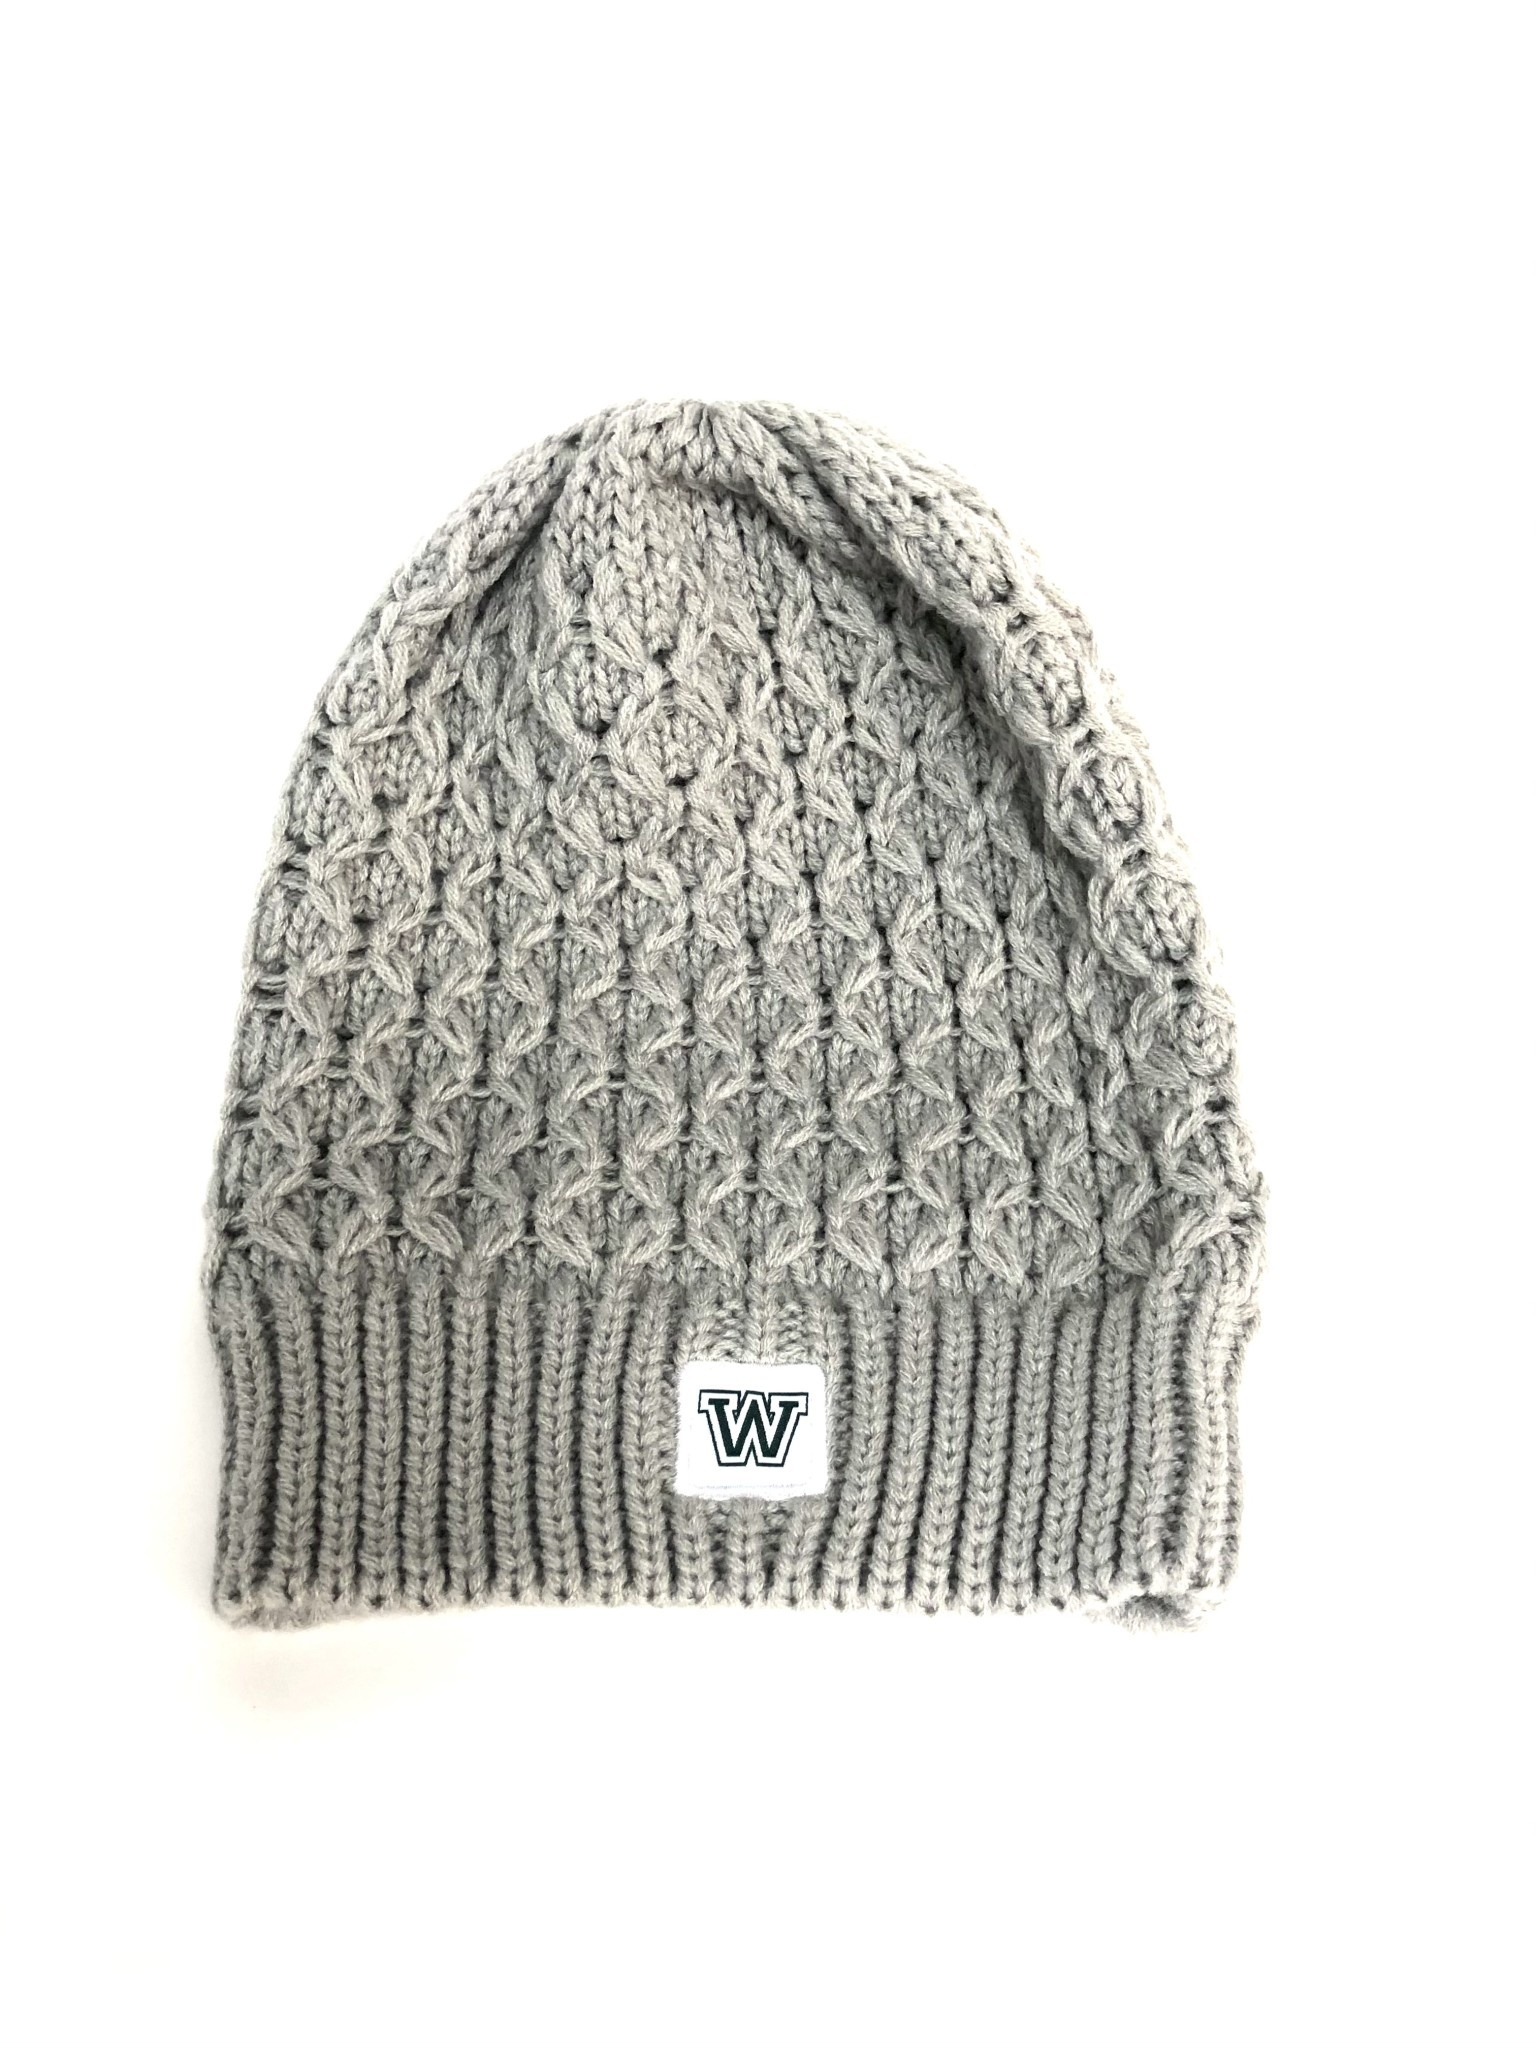 Nike Hat: Women's Slouchy Beanie - Pewter Gray with W